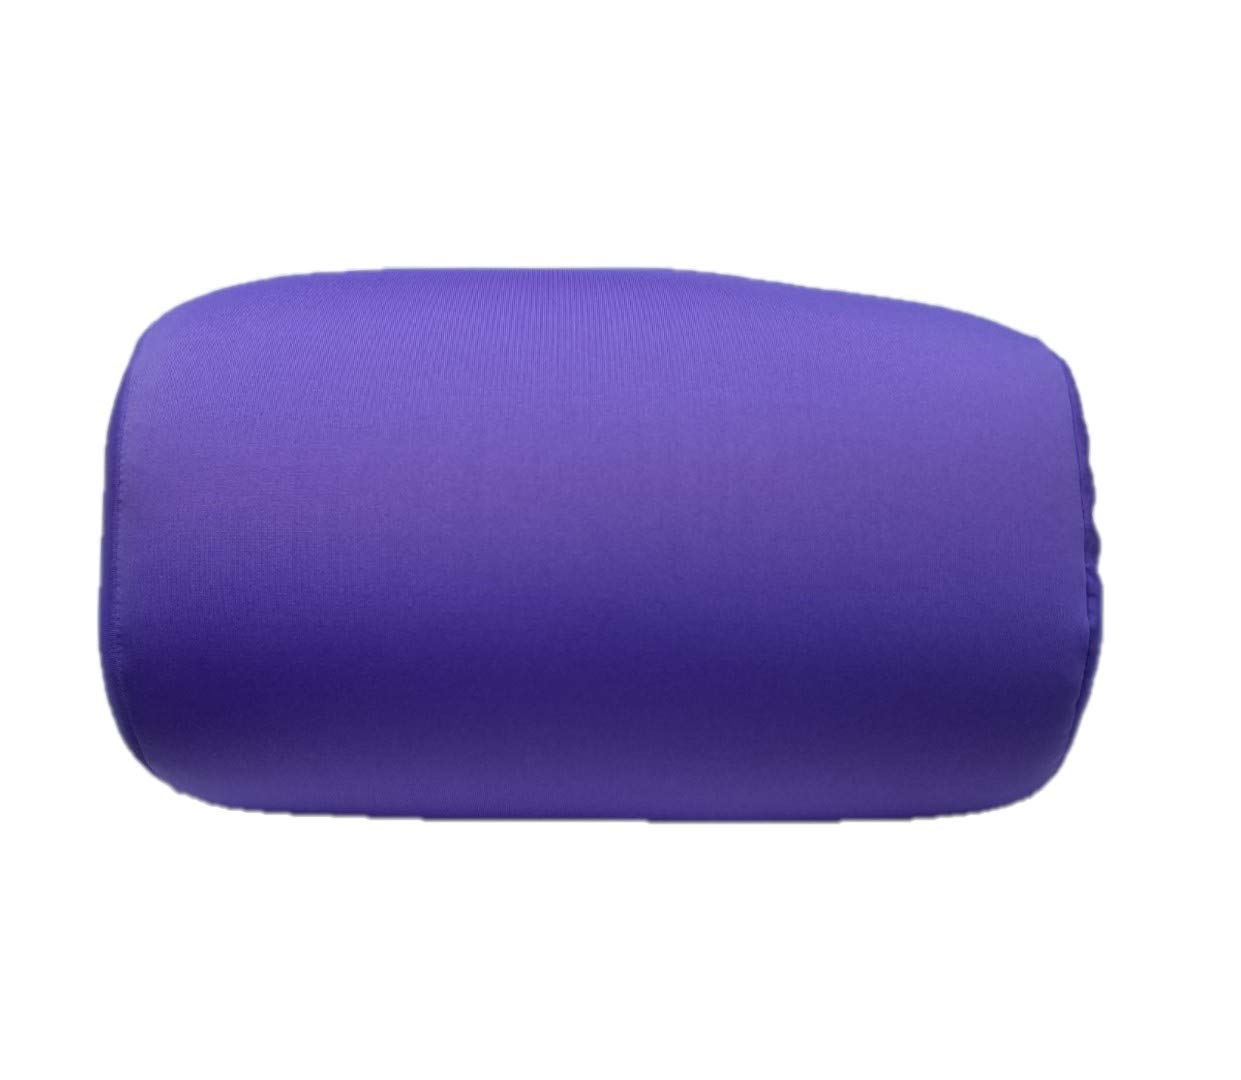 Bookishbunny Home Office Chair Car Seat Cushion Micro Bead Roll Pillow 7 X 12 Head Neck Back Body Comfort Purple